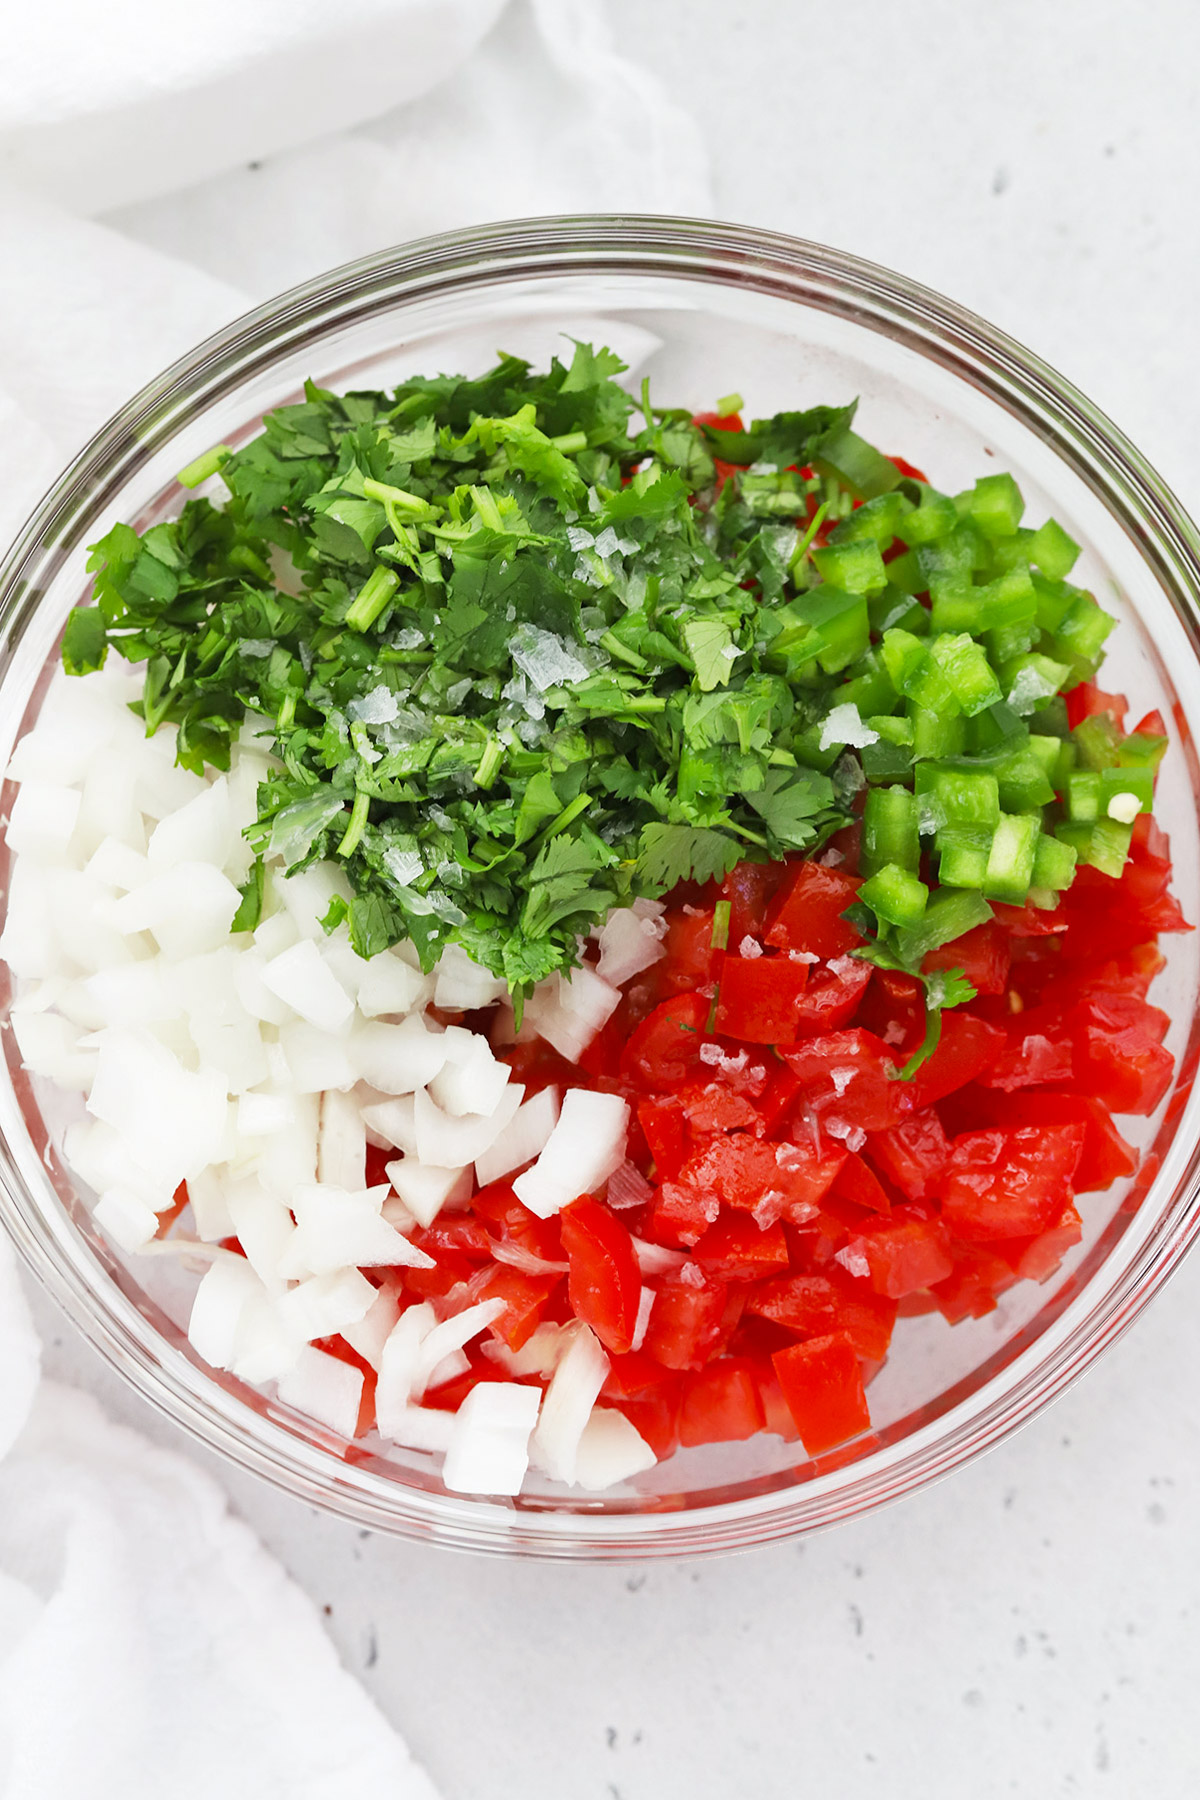 Overhead view of a bowl of pico de gallo ingredients ready to be mixed